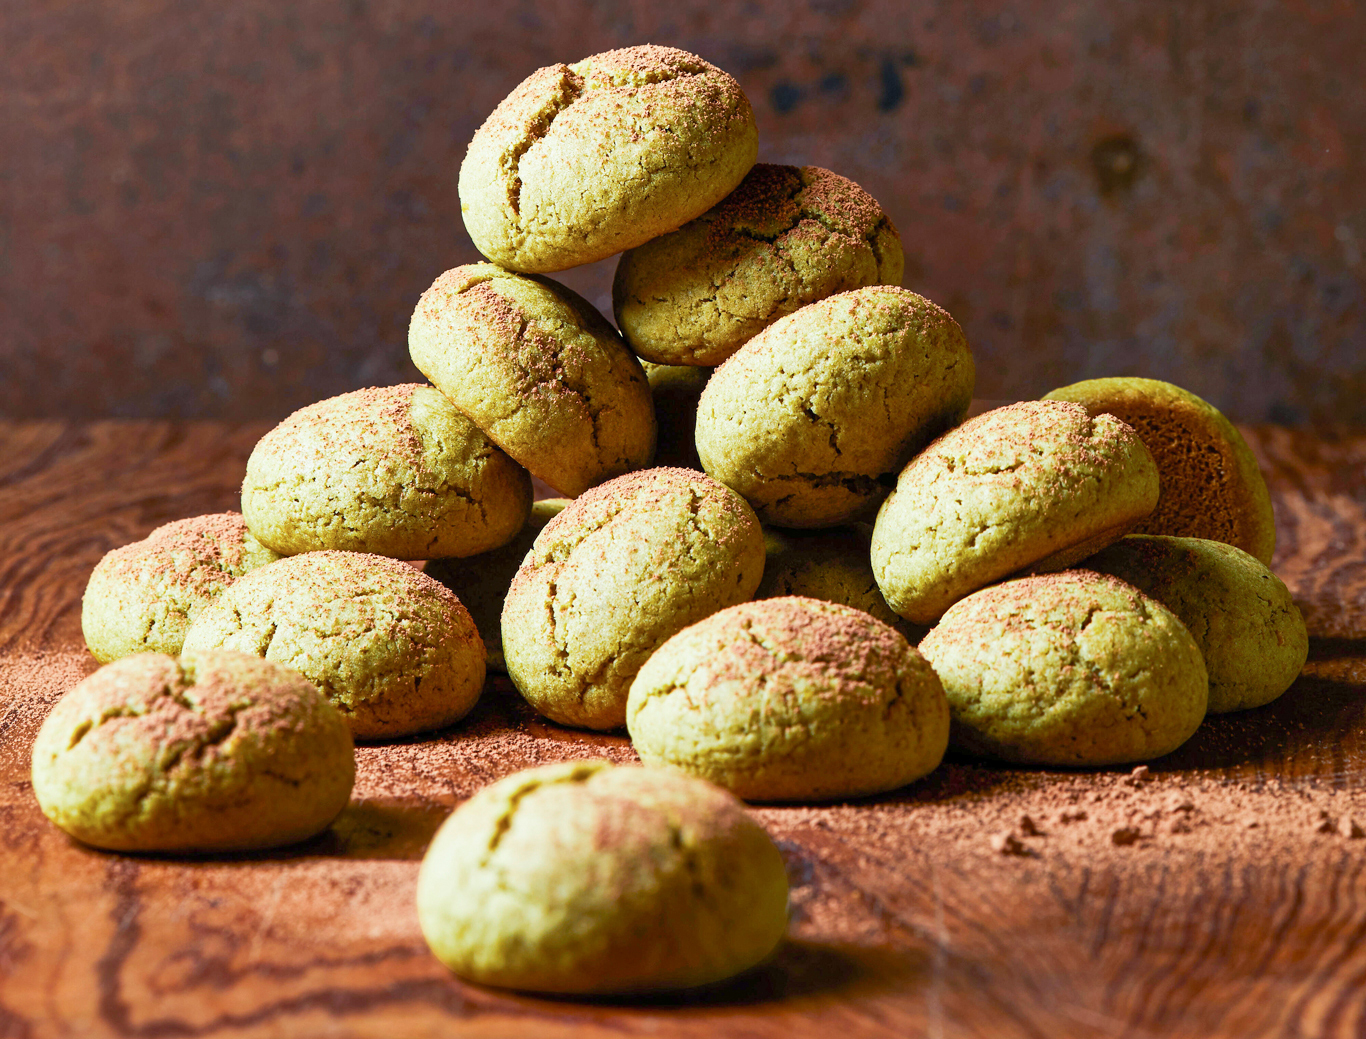 Matcha-Ginger Balls stacked on brown surface